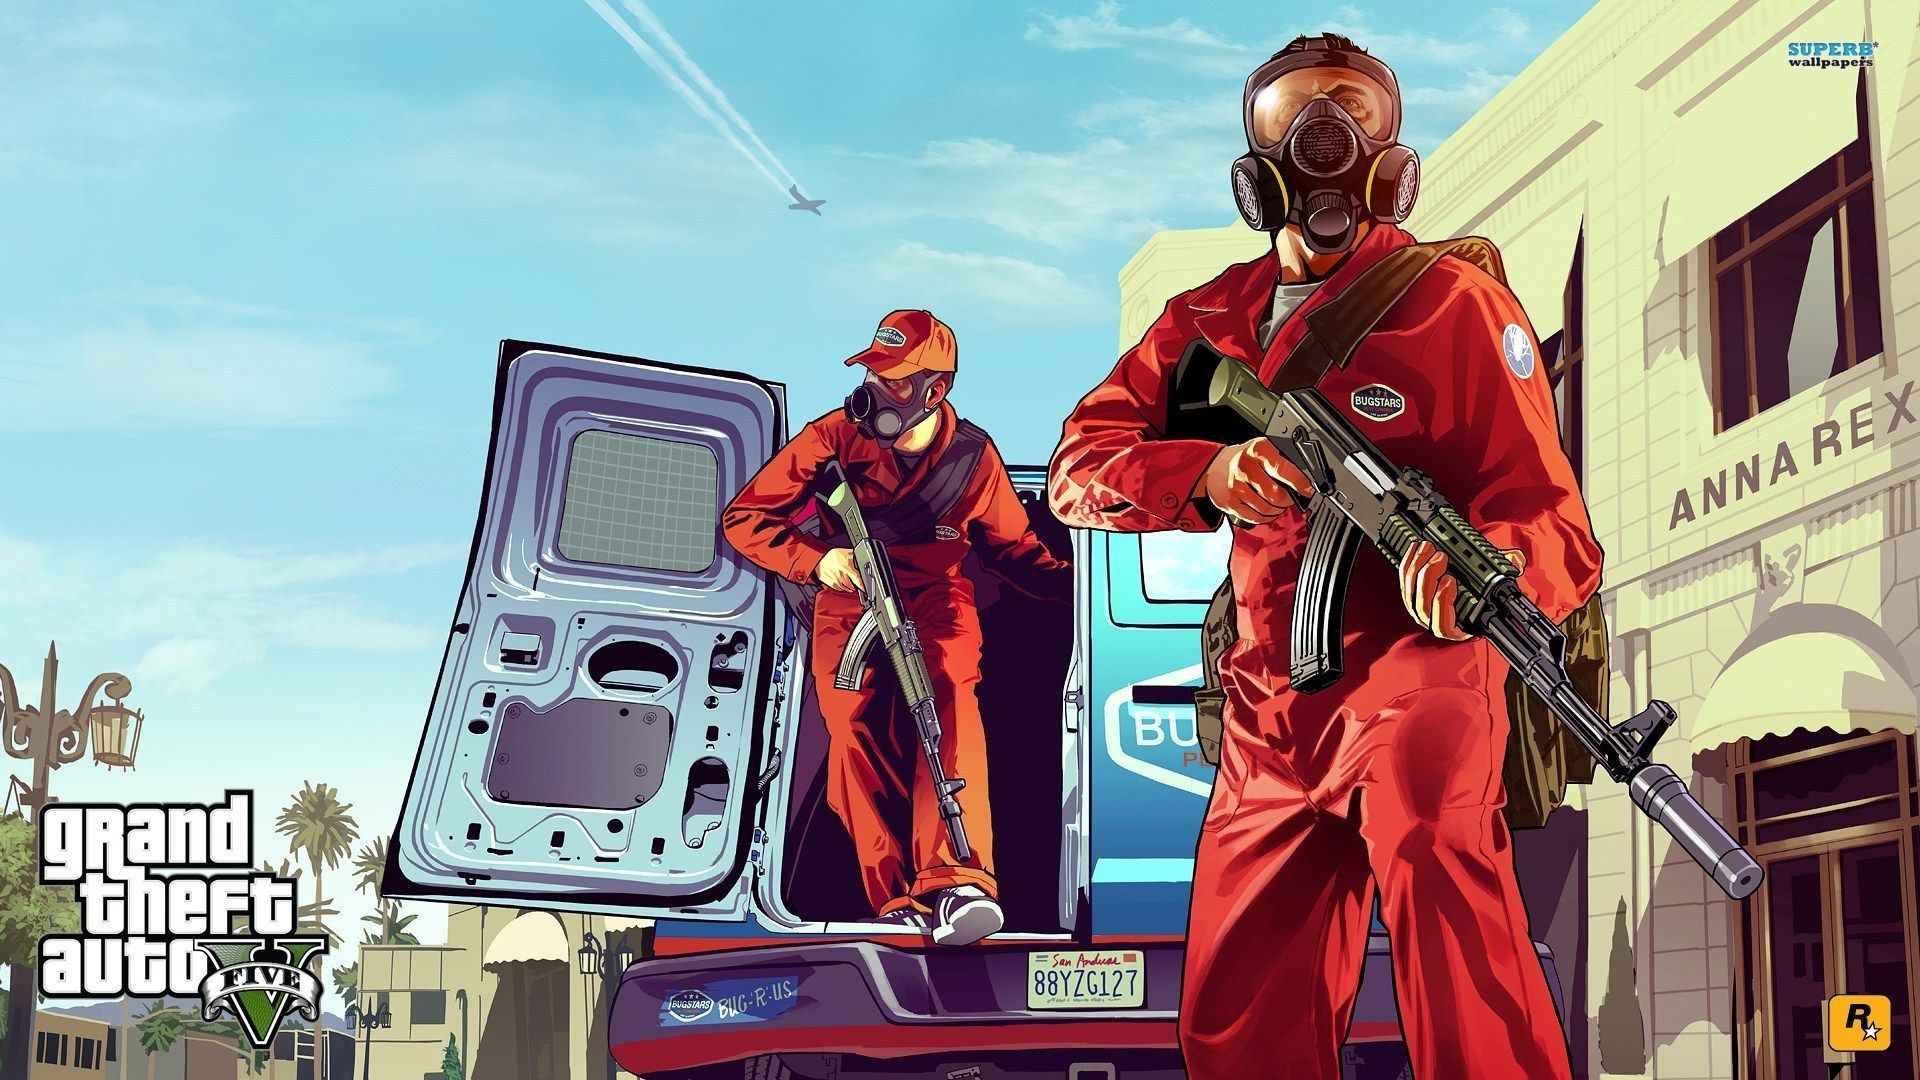 grand theft auto v computer wallpapers, desktop backgrounds 2560